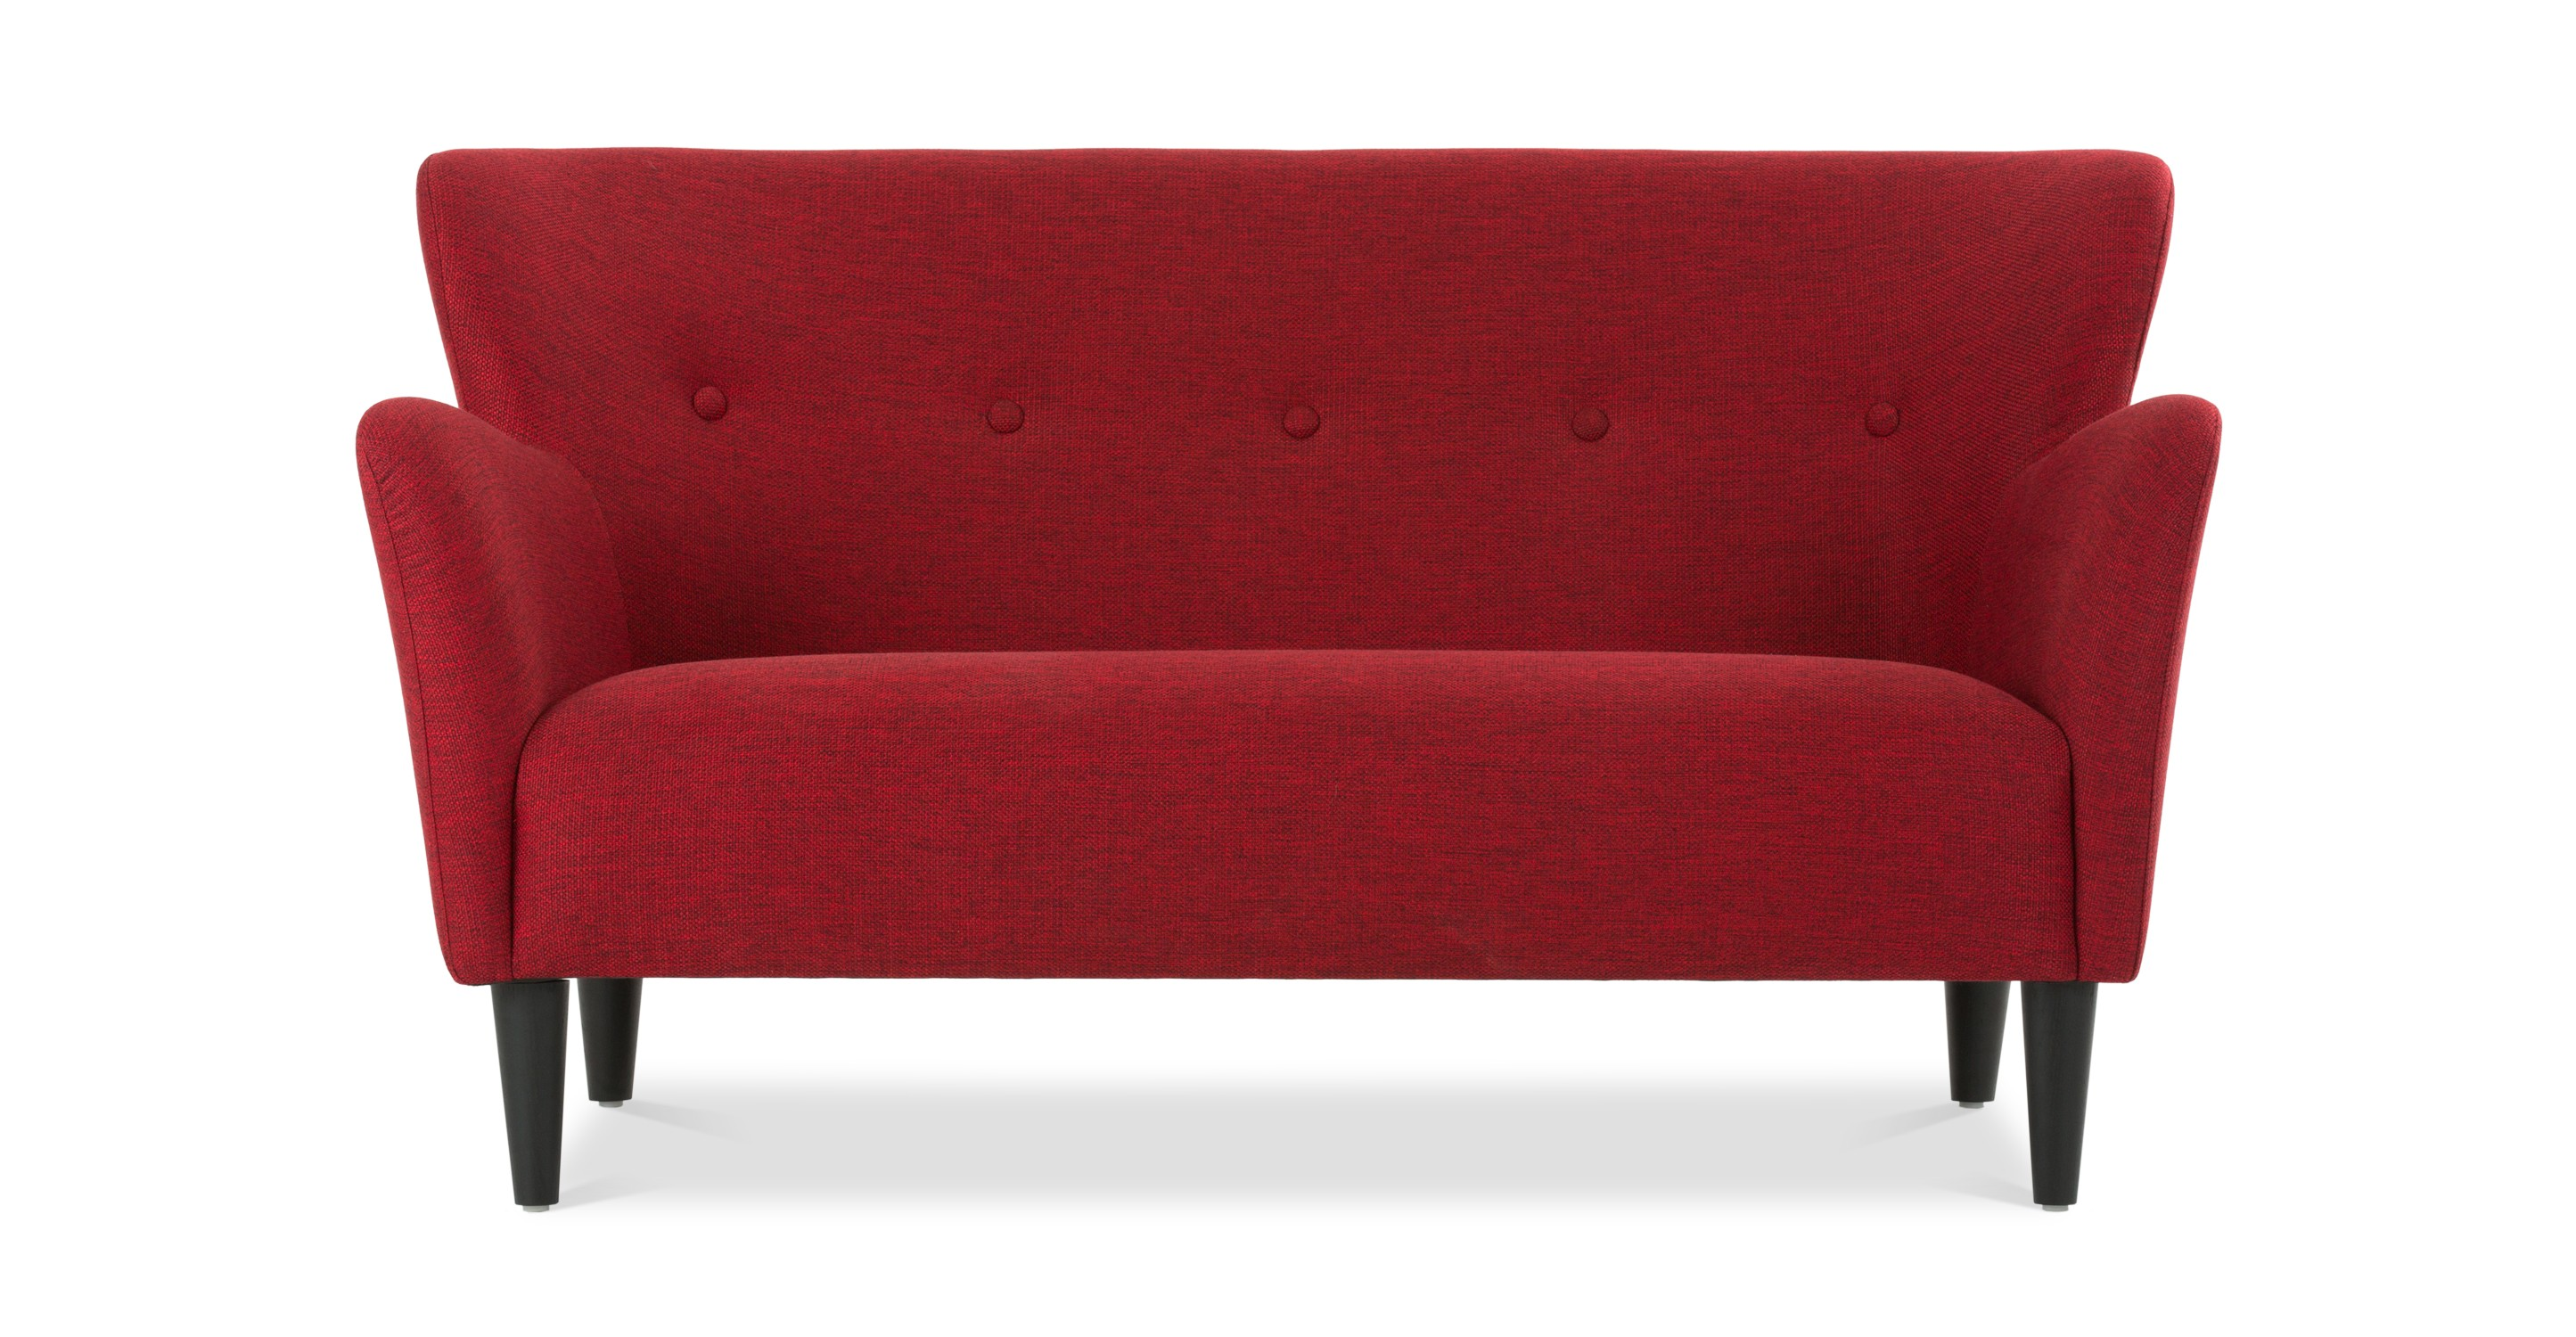 Happy Picasso Red Loveseat Loveseats Article Modern Mid Century And Scandinavian Furniture